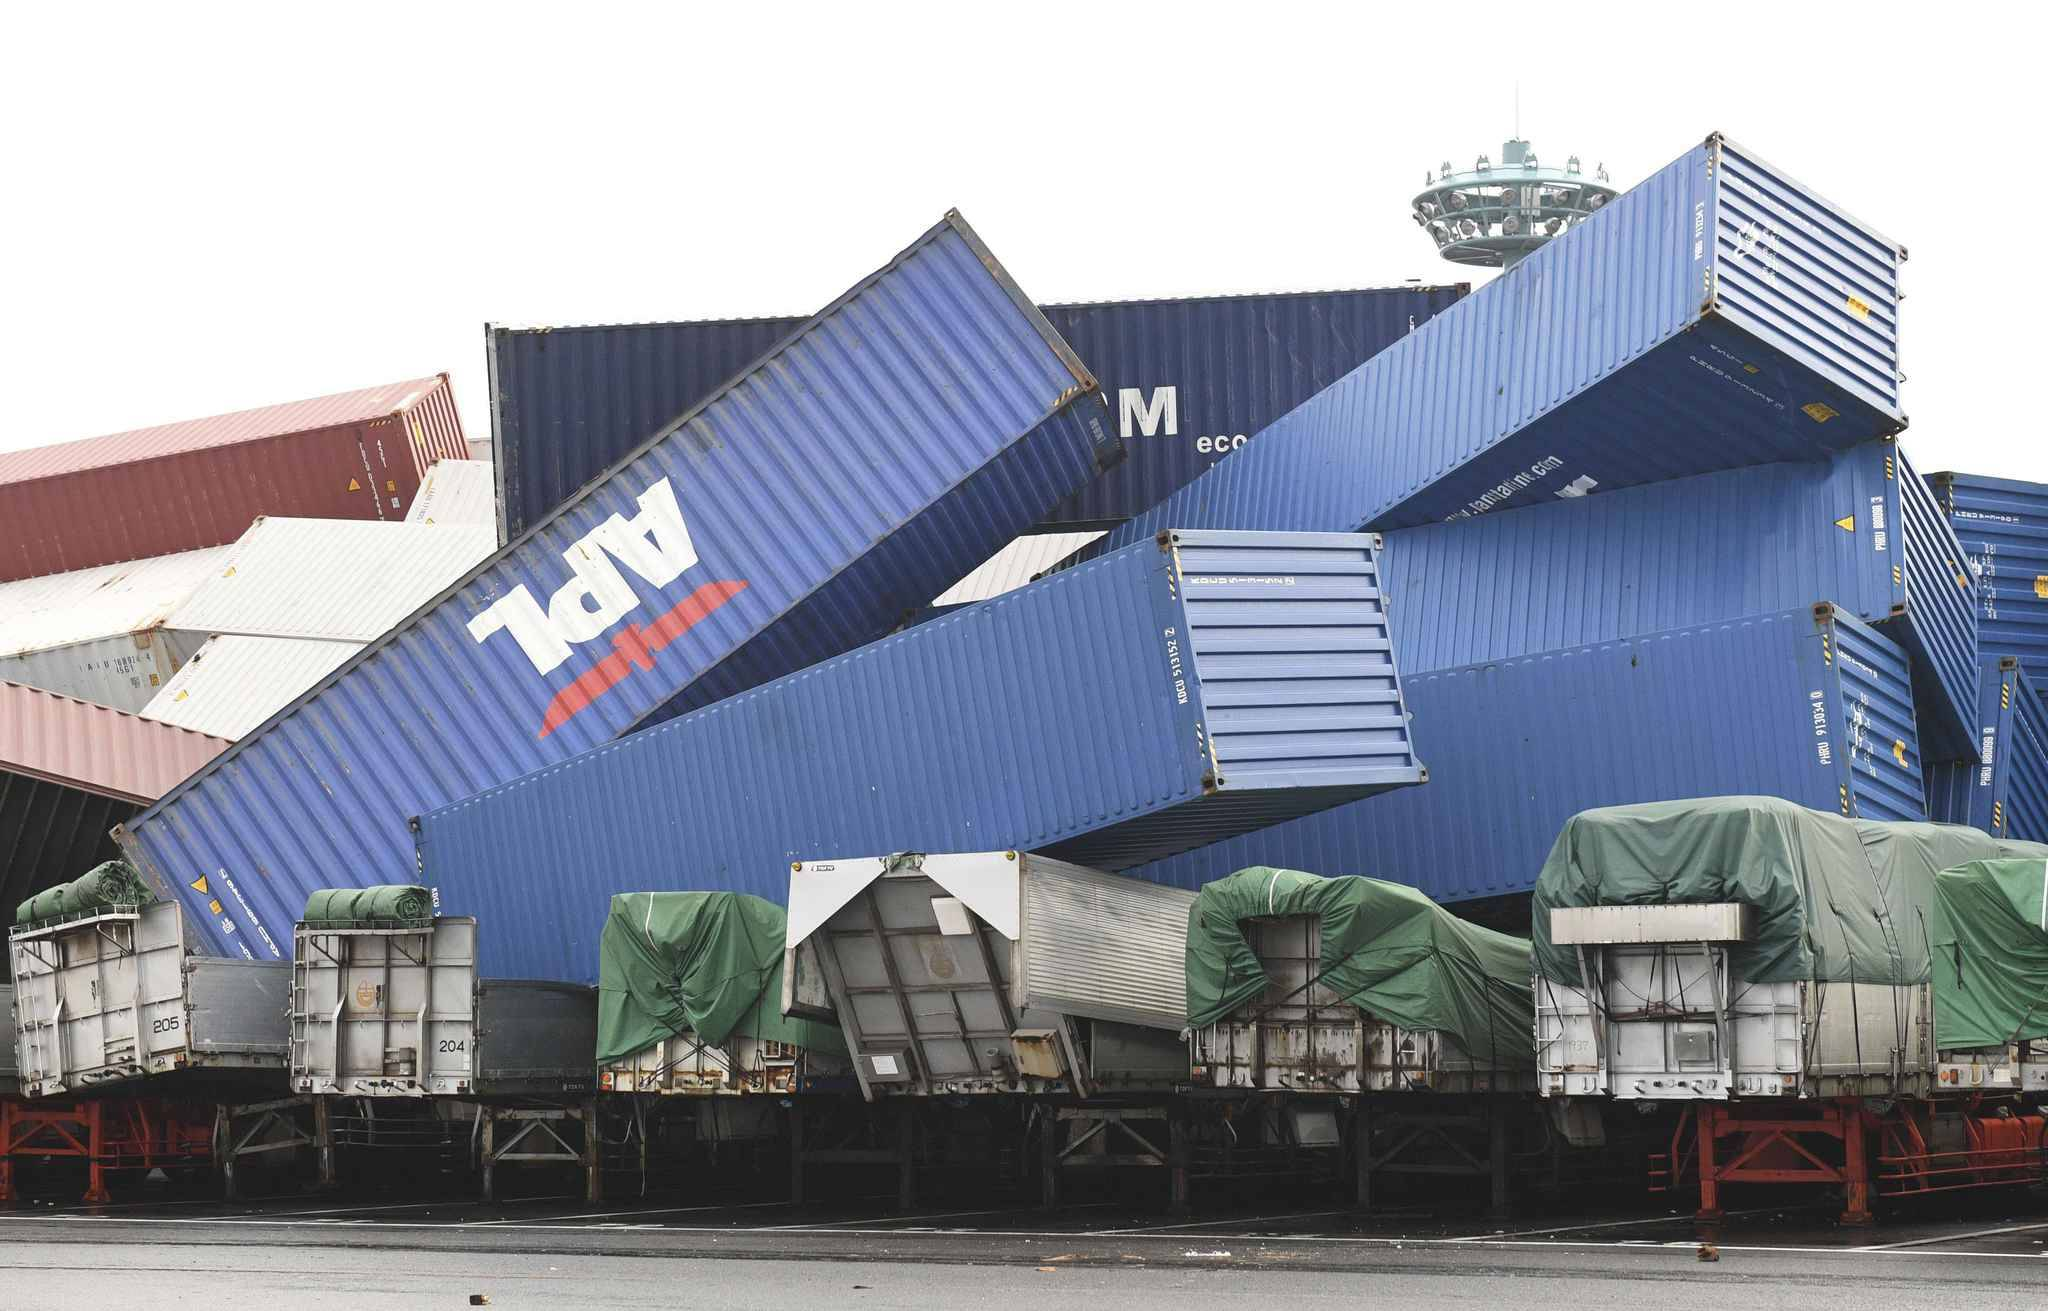 Containers are heaped on trailers due to a strong wind caused of the typhoon Jebi is pictured in Osaka on Sep.4, 2018. Powerful typhoon made a landfall on Tokushima Prefecture in noon and expected to proceed to the Sea of Japan. Violent winds, high waves and heavy rains are forecasted in wide area of Japan till next day.